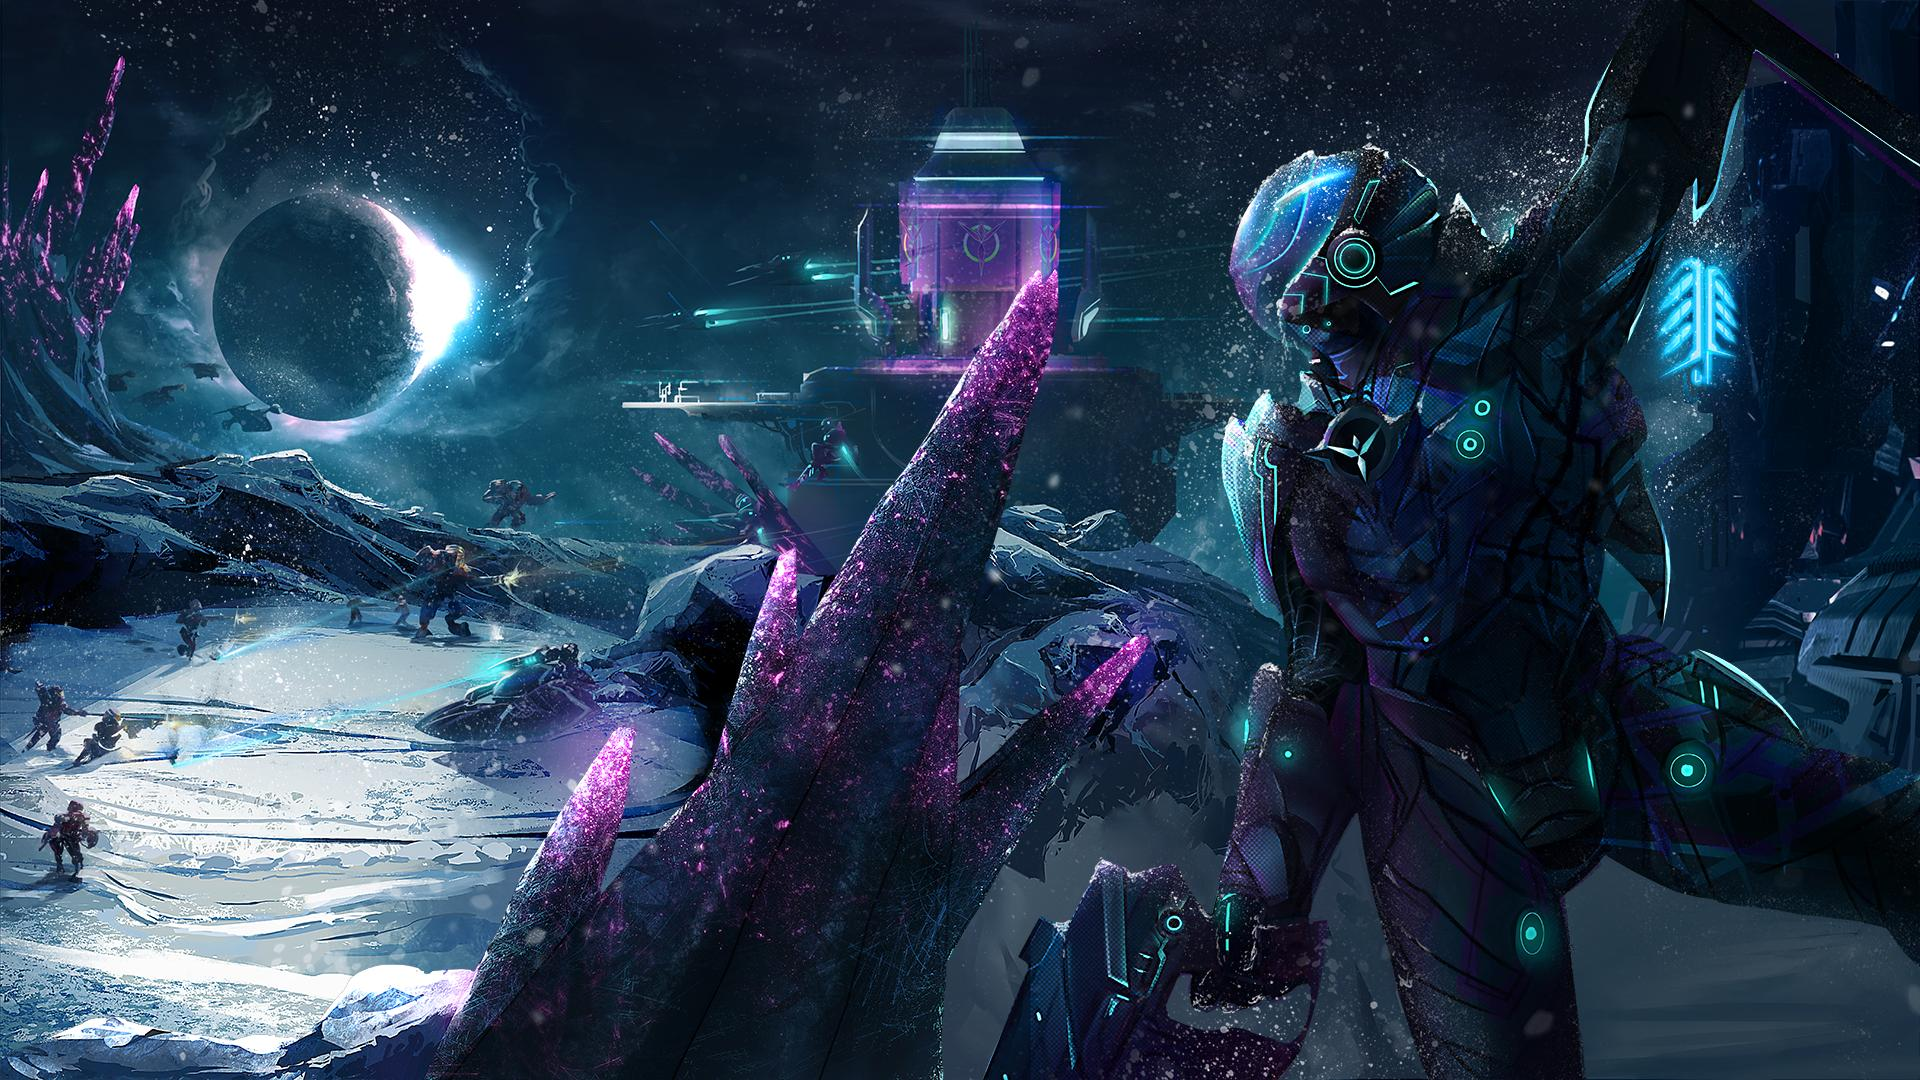 Epic Gaming Wallpapers Hd Epic Gaming Backgrounds 1920x1080 Download Hd Wallpaper Wallpapertip